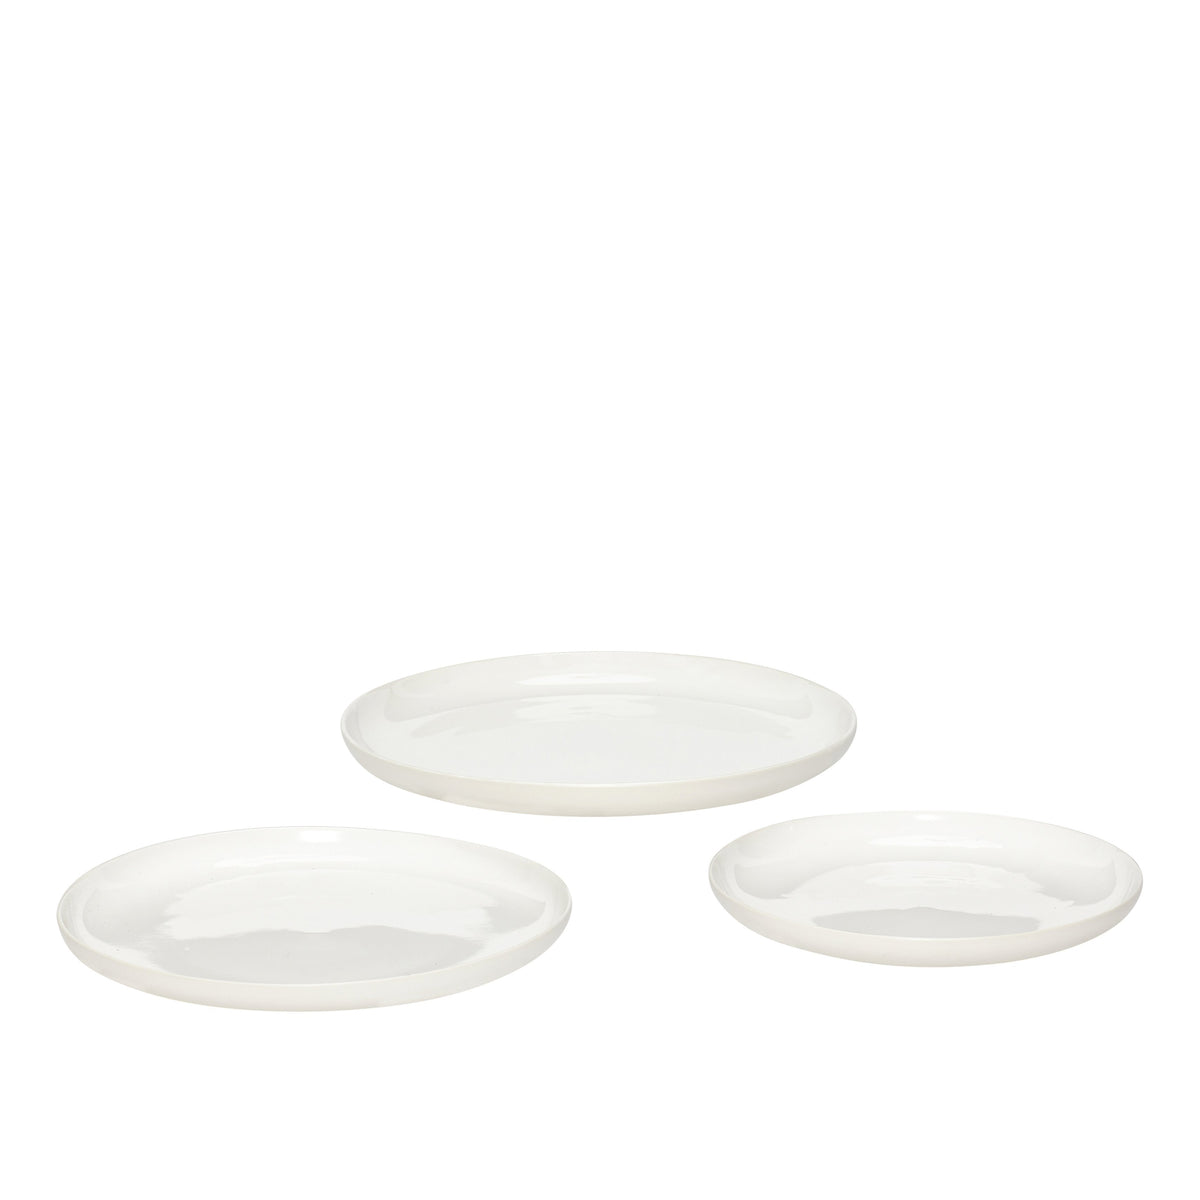 White Porcelain Plates, Set of 3